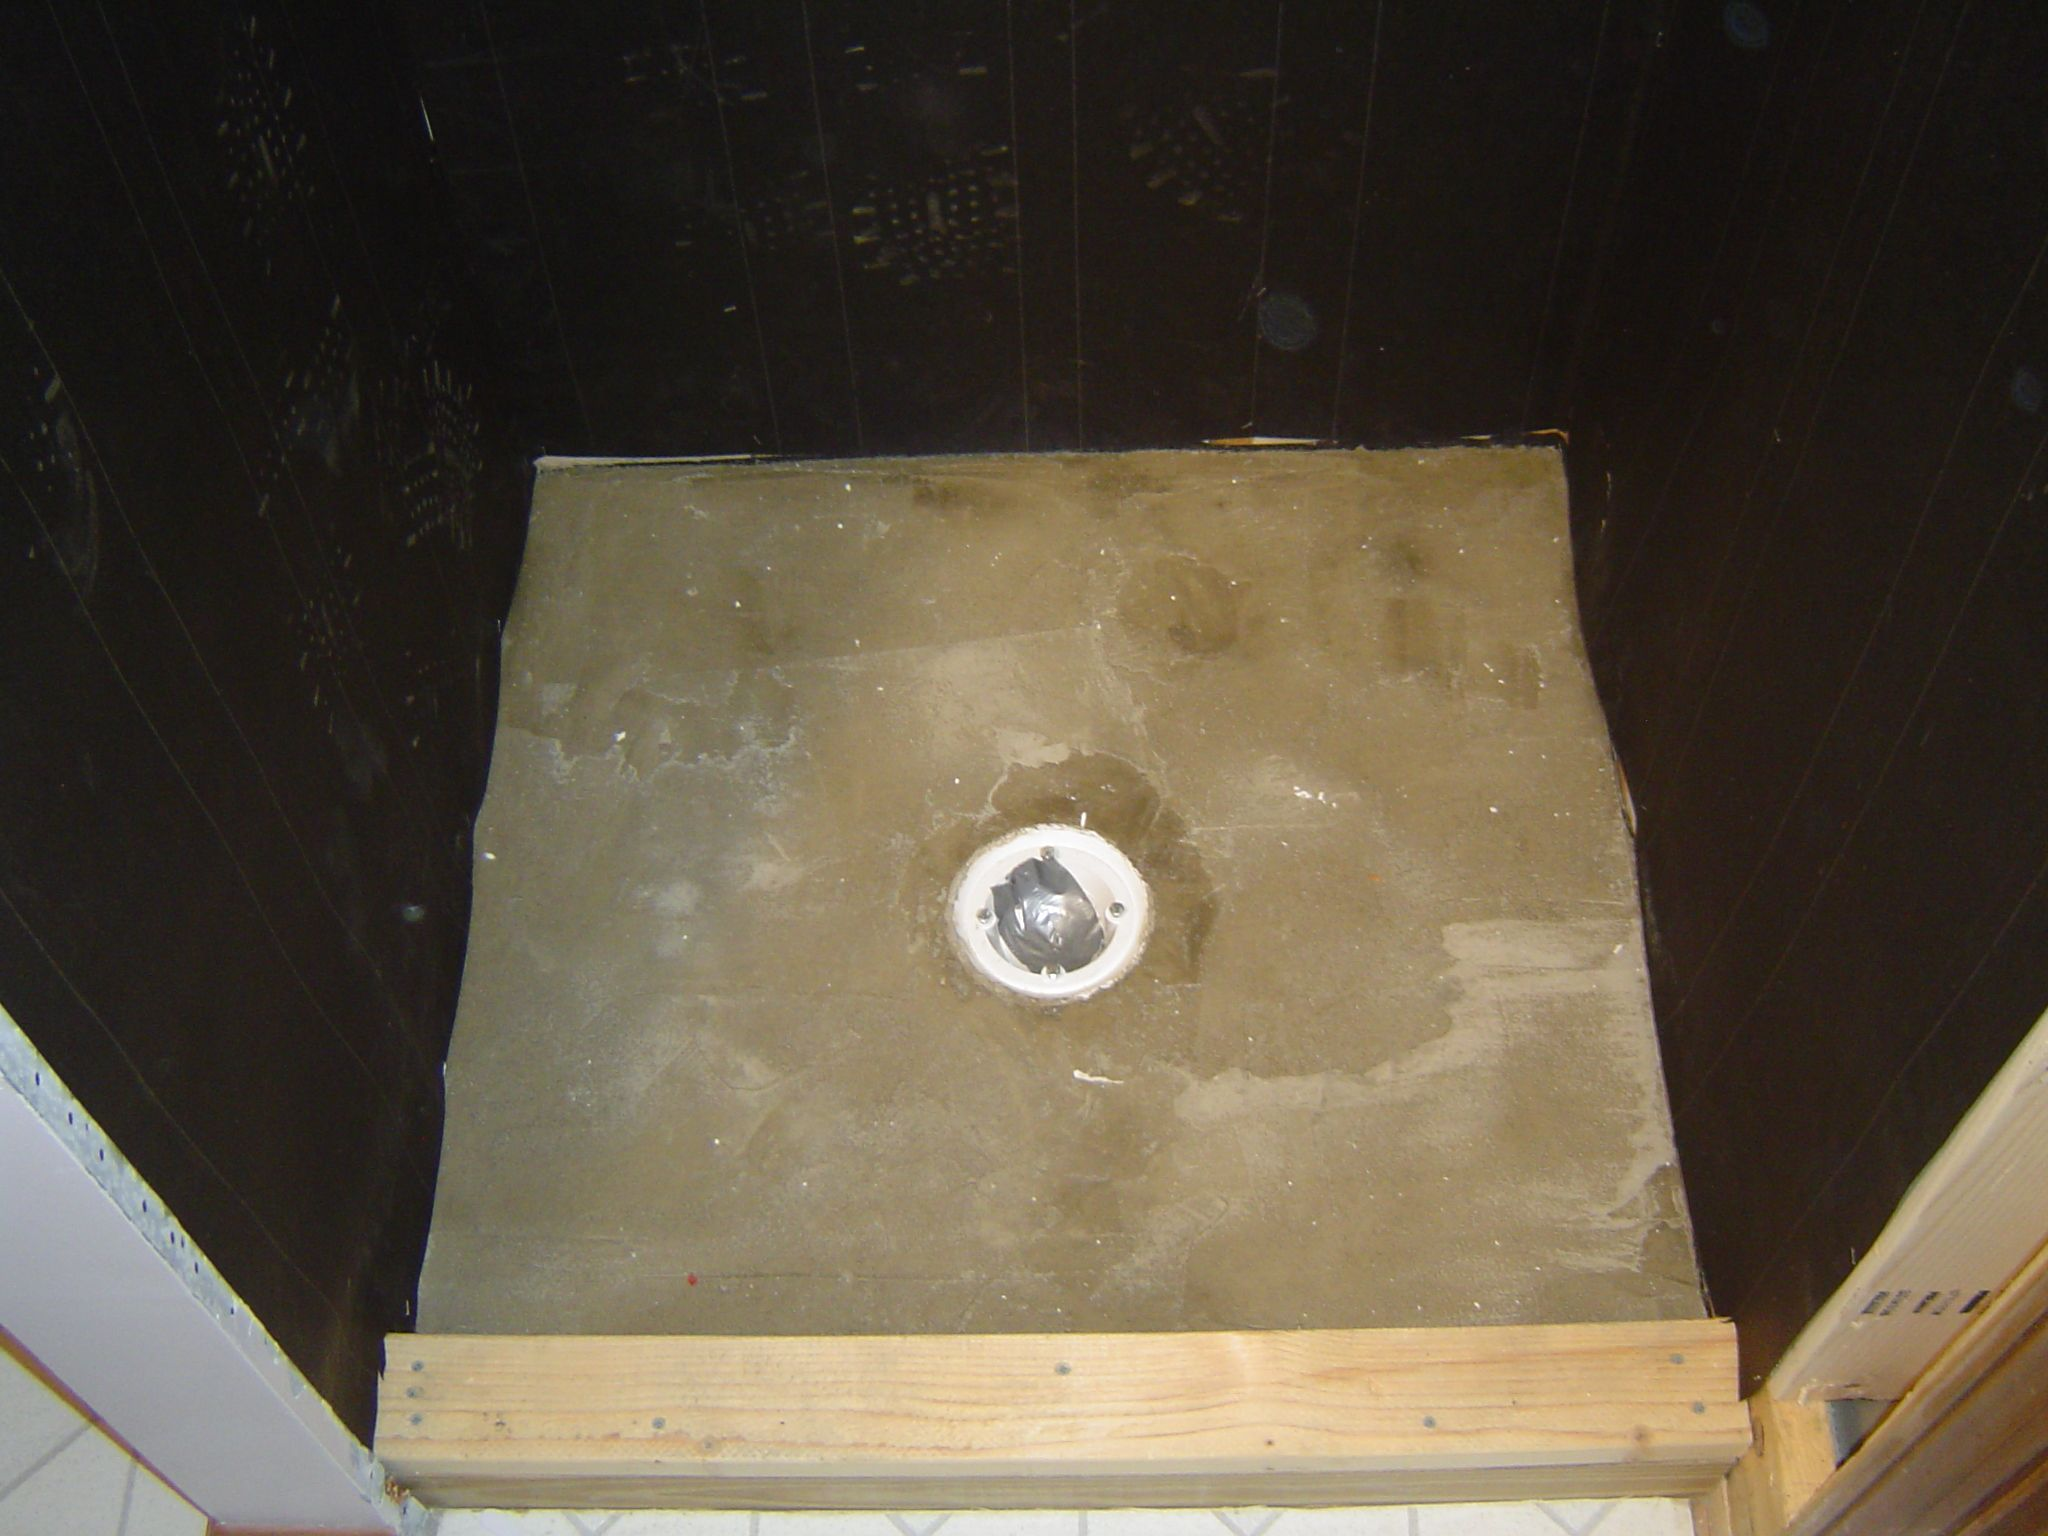 Felt Tar Paper Is Used To Act As A Moisture Barrier On The Shower Walls Prior To Sheathing Http Www Homeadditio House Tiles Tiles Home Improvement Projects